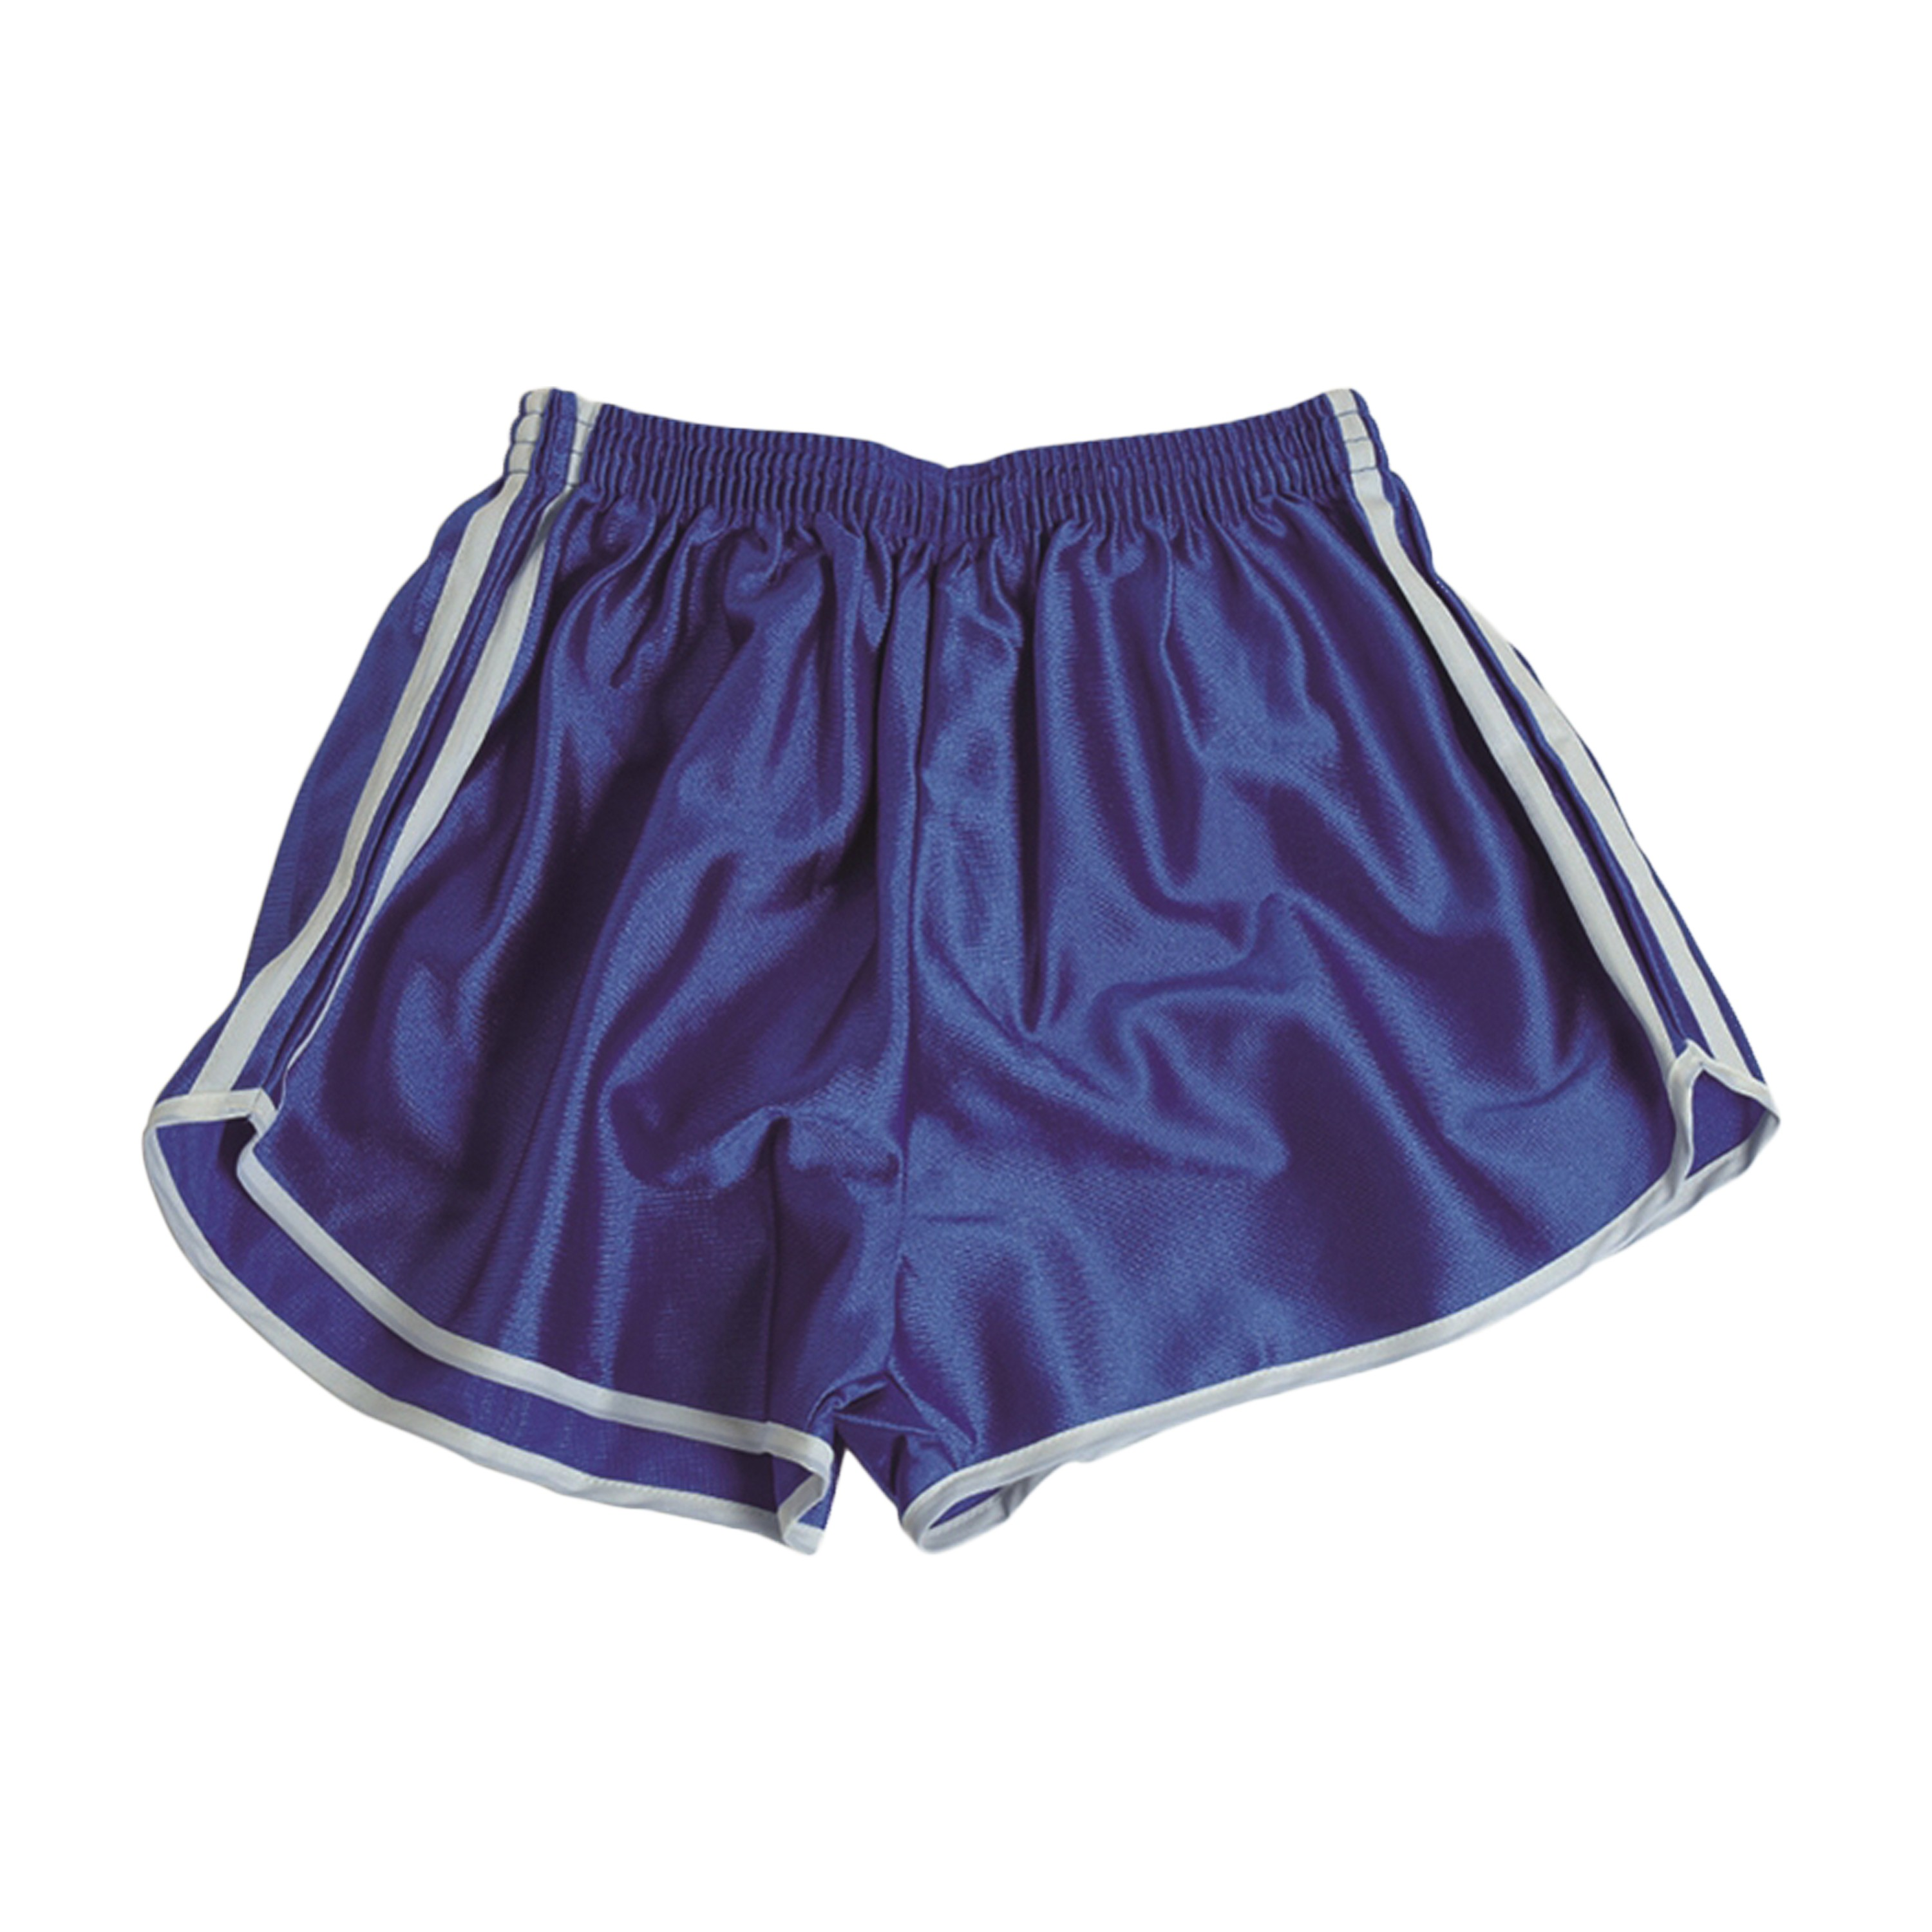 French Sport Shorts with Stripes Like New blue